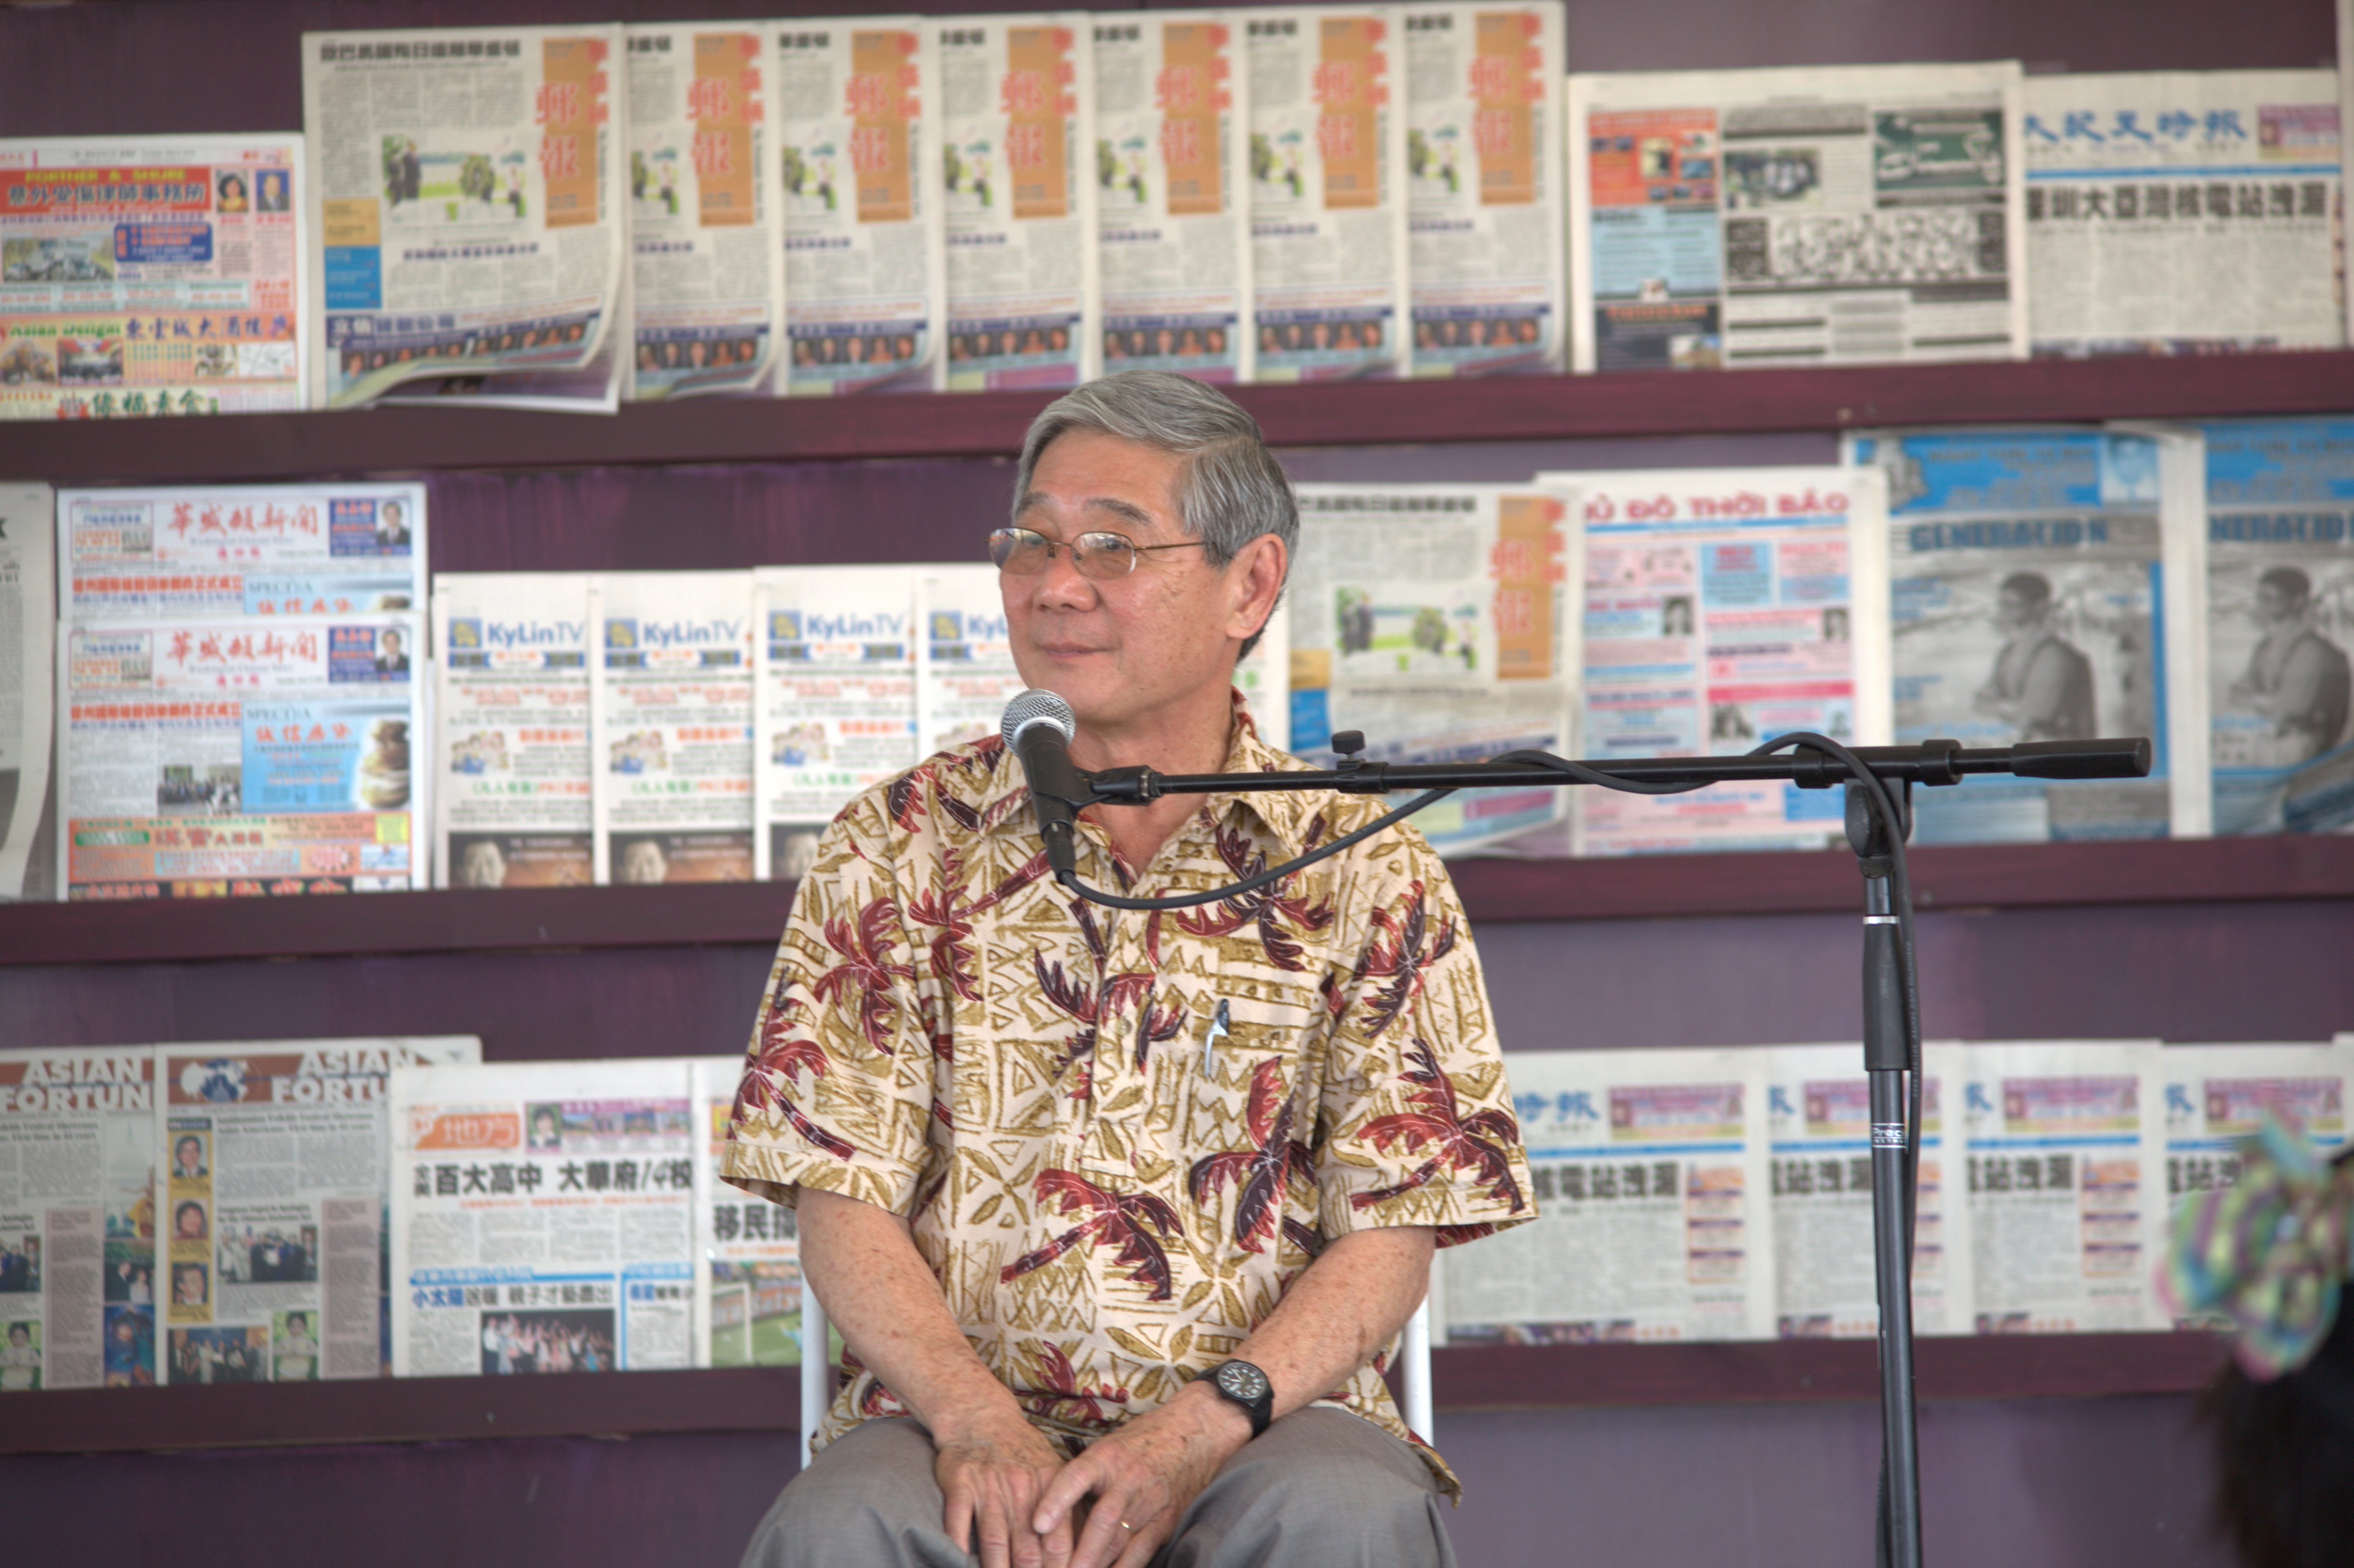 Seated man with microphone in front of him on stage with multilingual newspapers behind him.